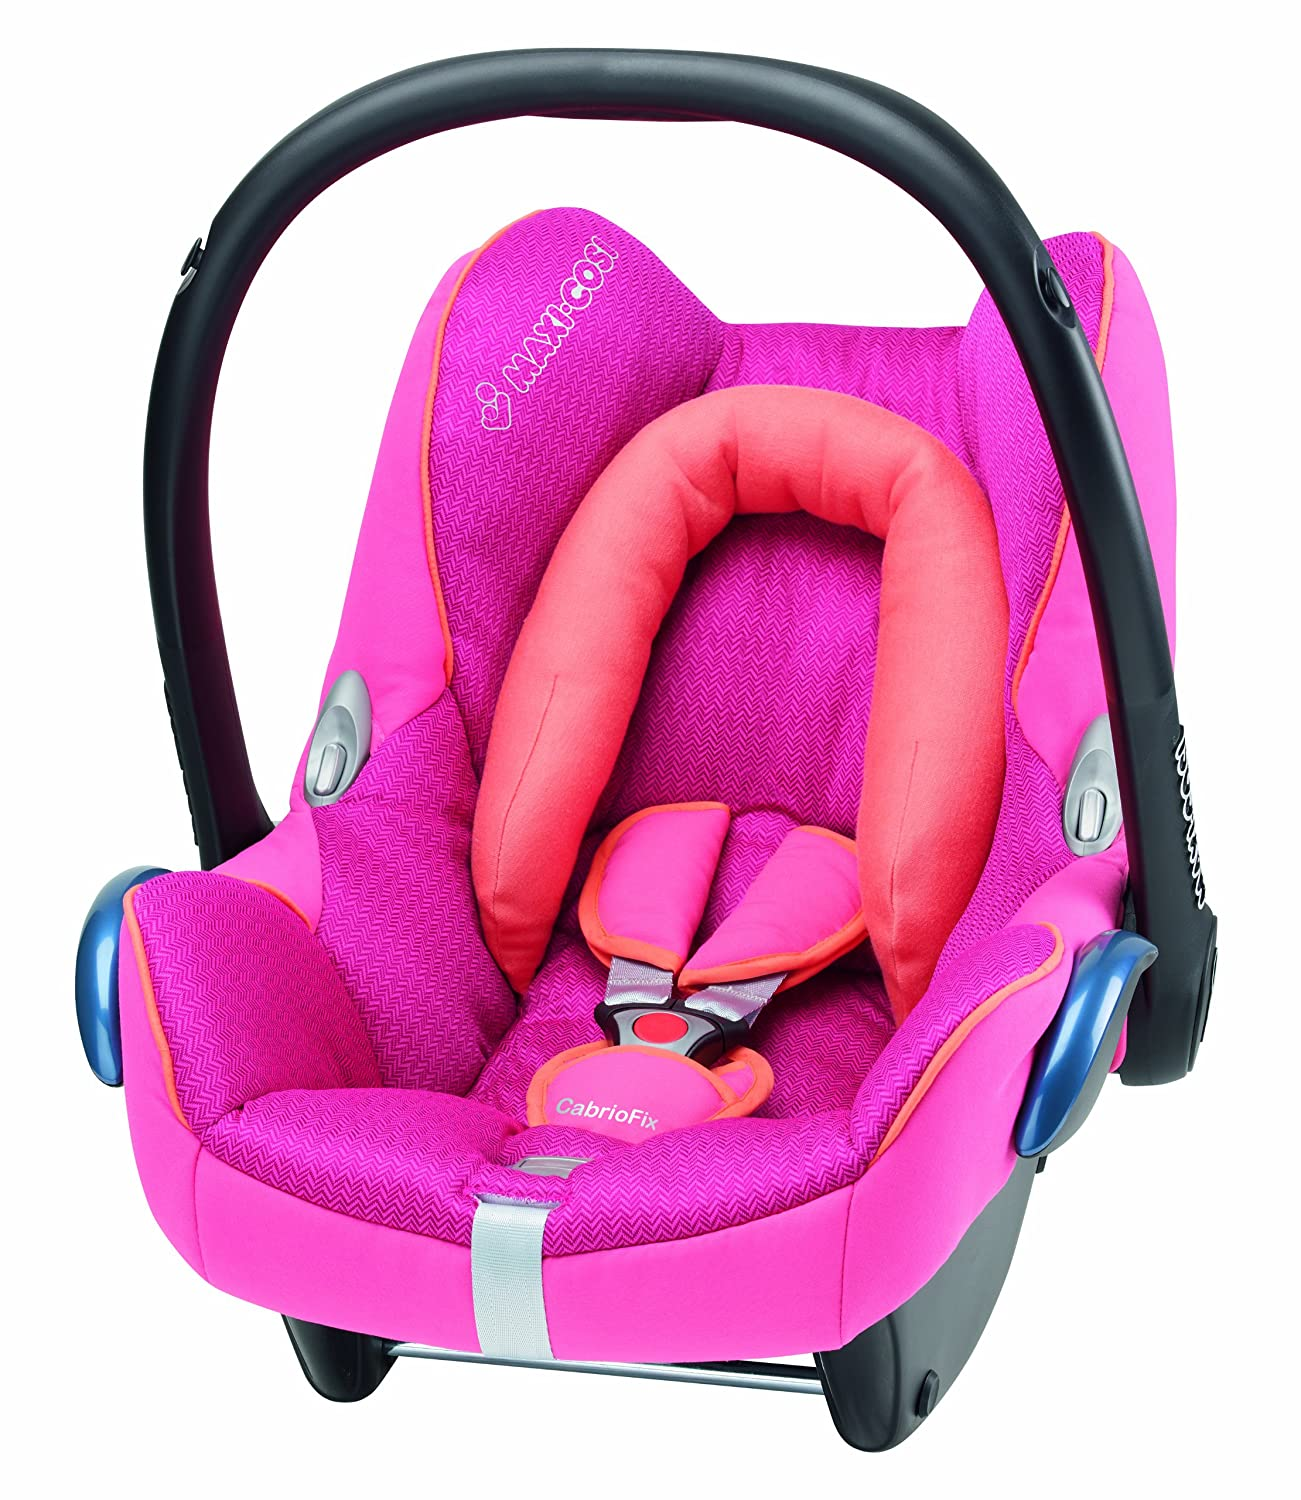 Maxi Cosi Cabriofix Group 0 Infant Carrier Car Seat Spicy Pink Amazoncouk Baby